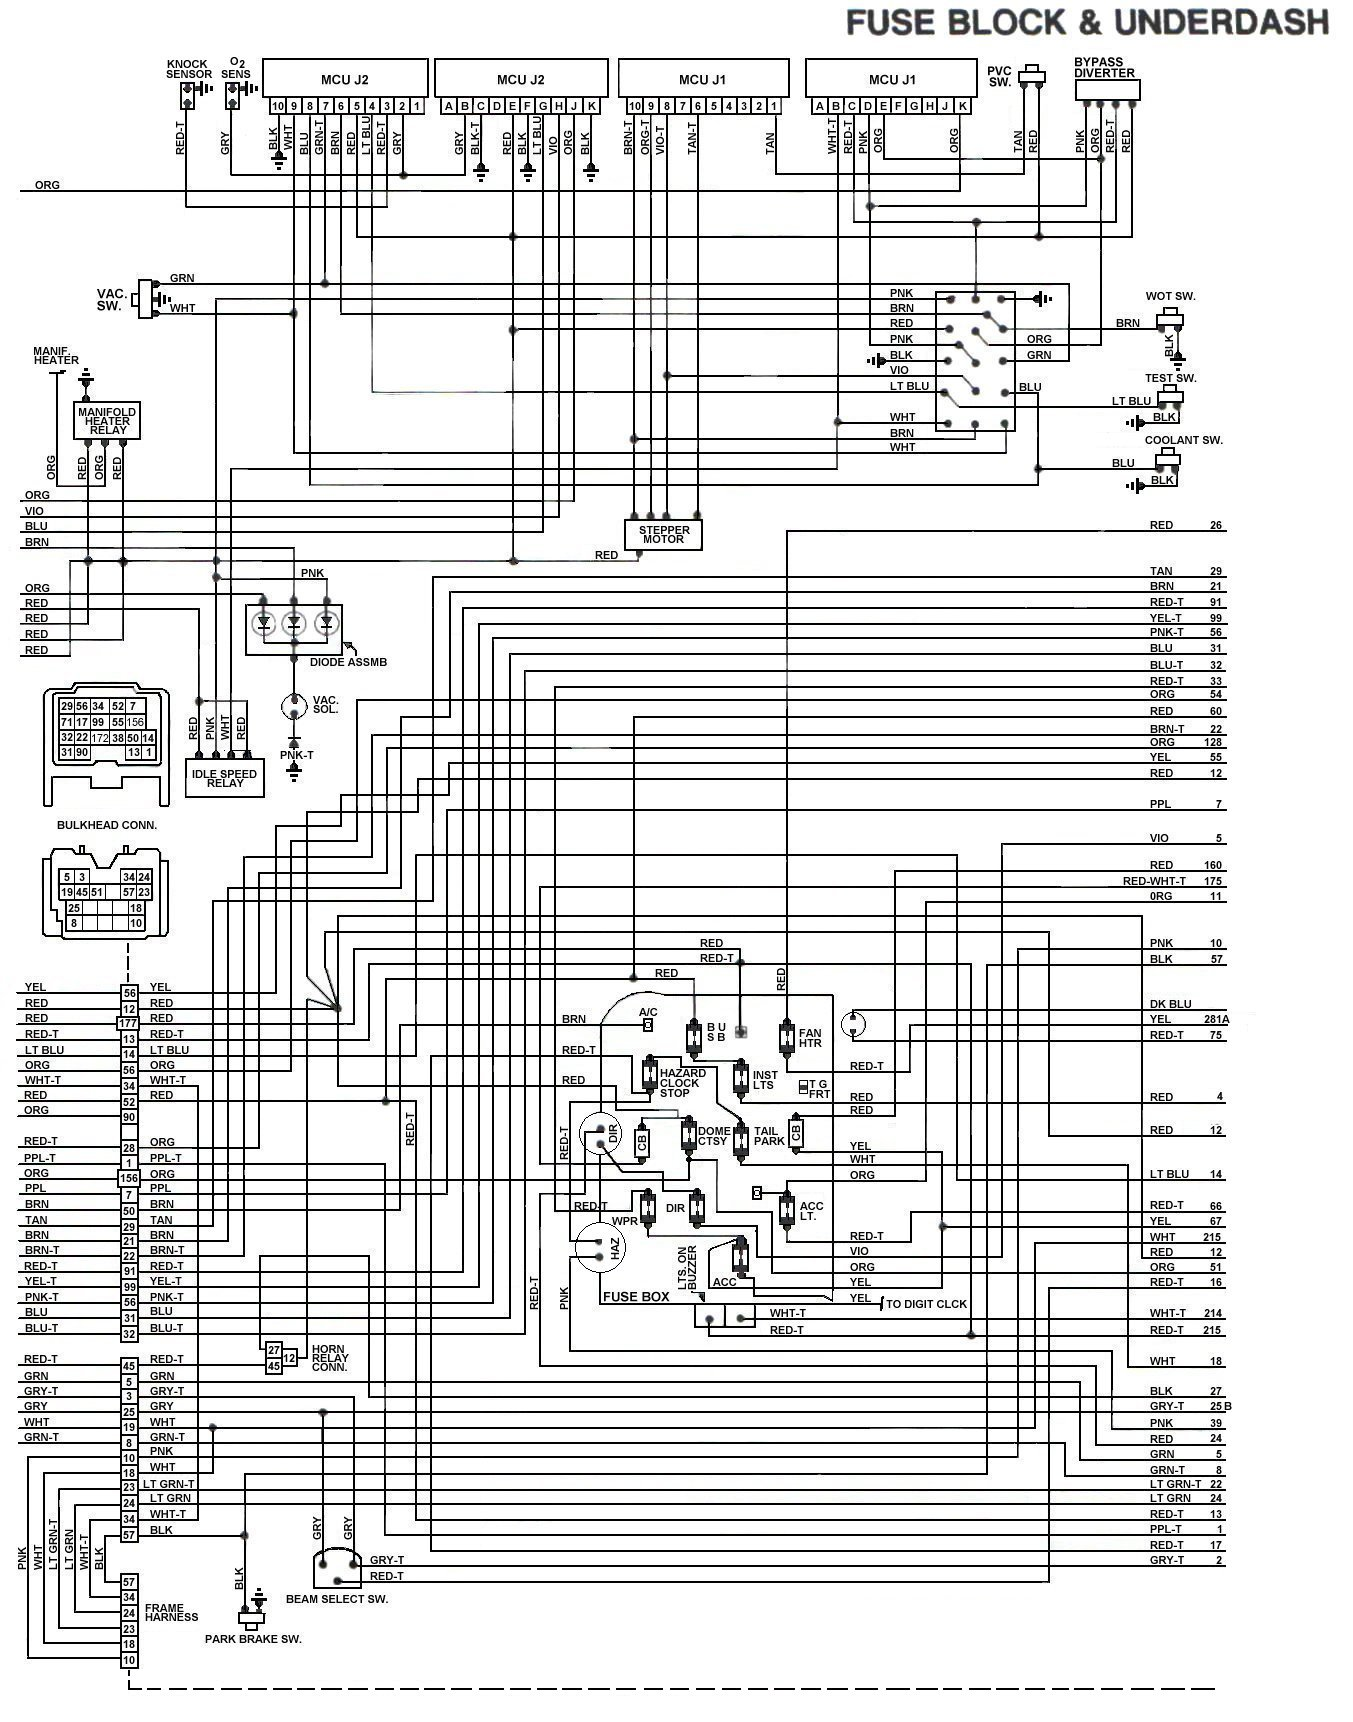 83_FSJ_WiringDiagram_FuseBlock Underdash 1981 el camino fuse box diagram wiring diagram simonand 67 chevy c10 fuse box diagram at nearapp.co